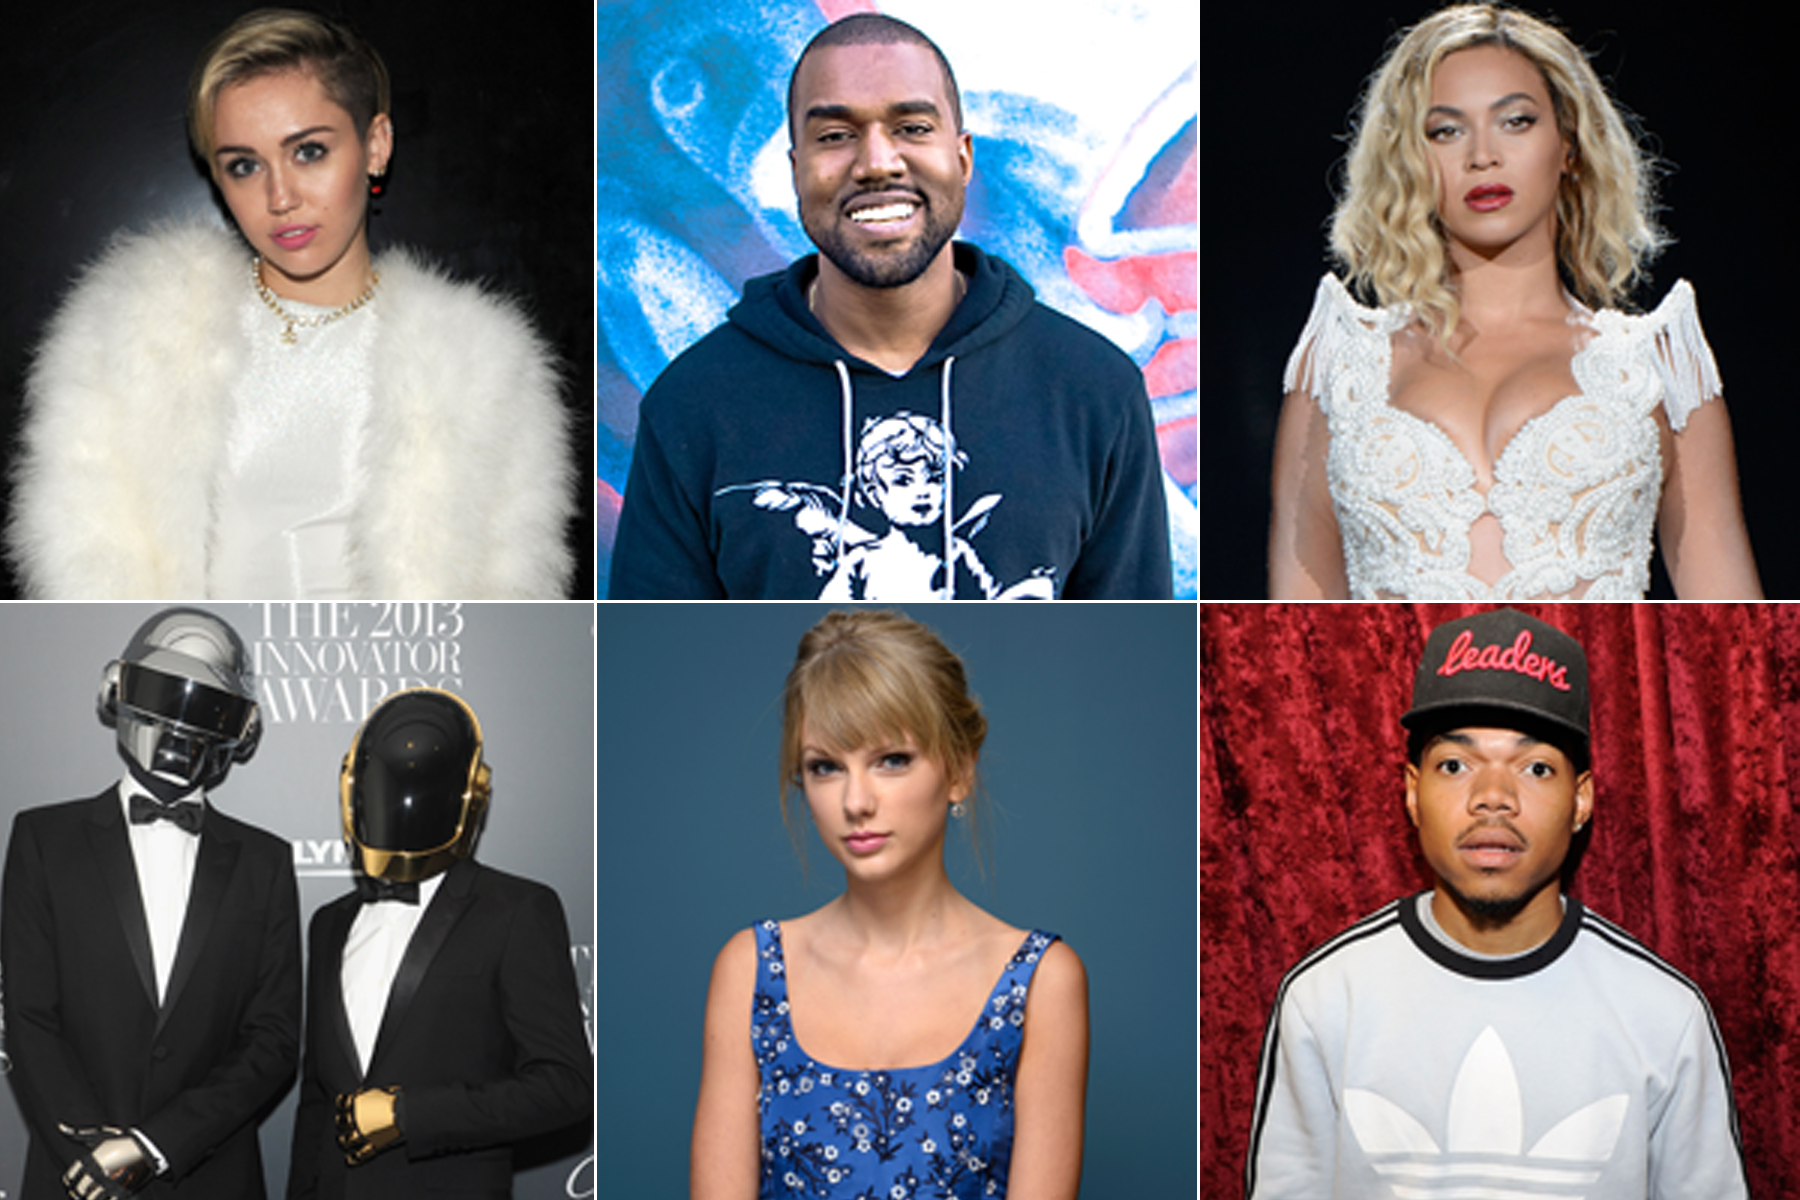 Rob Sheffield's Top 25 Songs of 2013